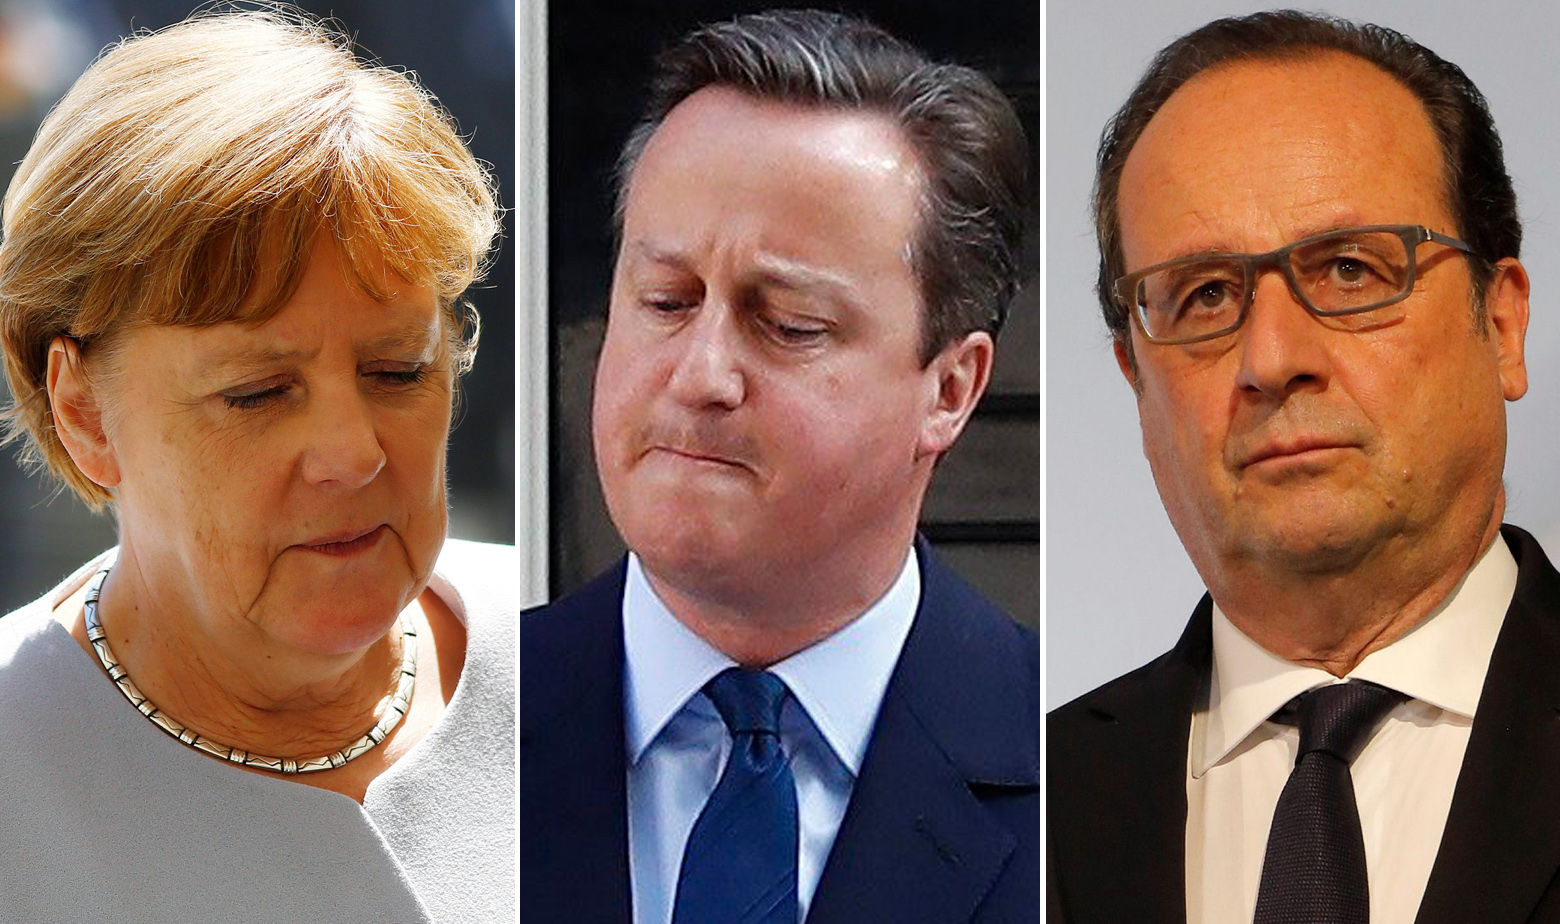 Francois Hollande, David Cameron, Angela Merkel